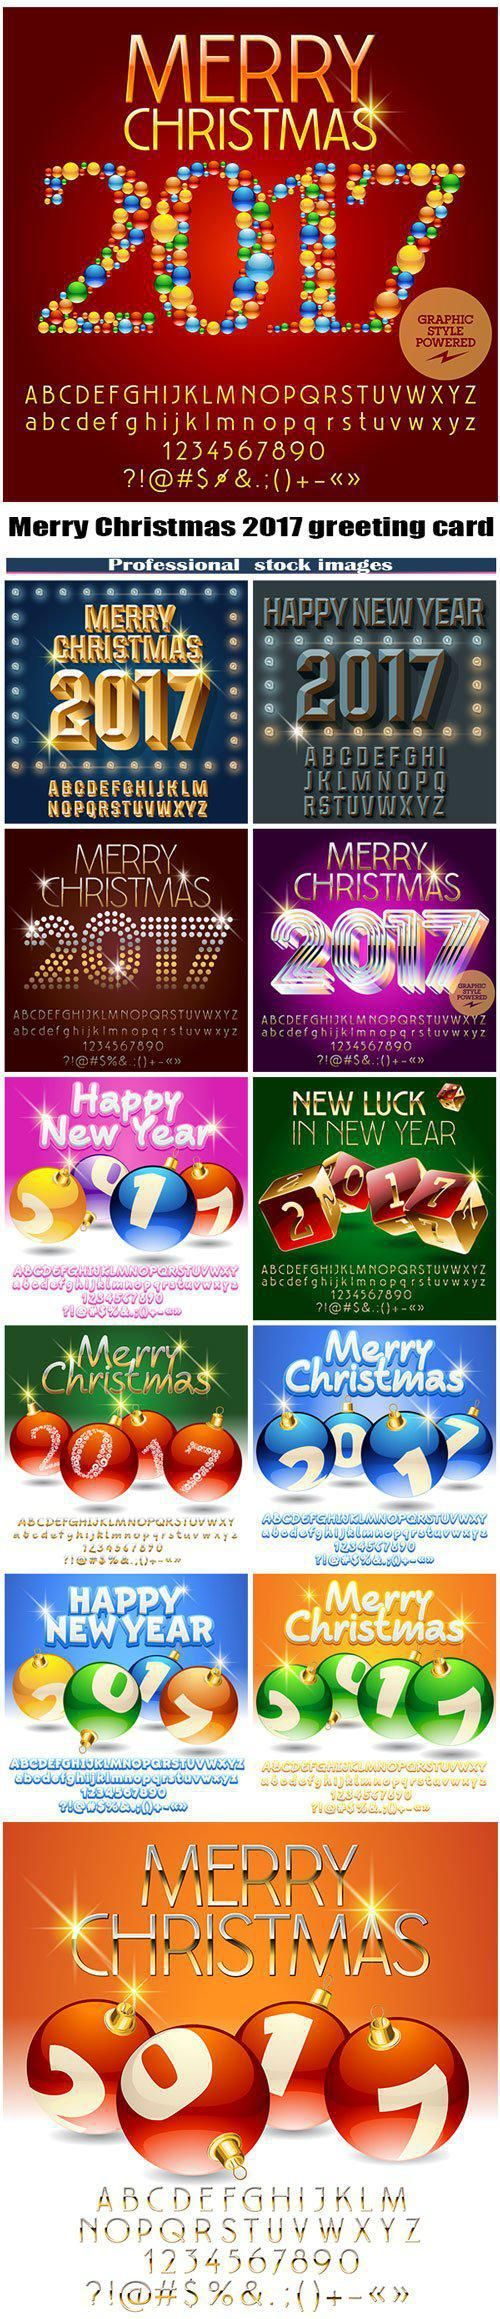 Merry Christmas 2017 greeting card with set of letters symbols and numbers